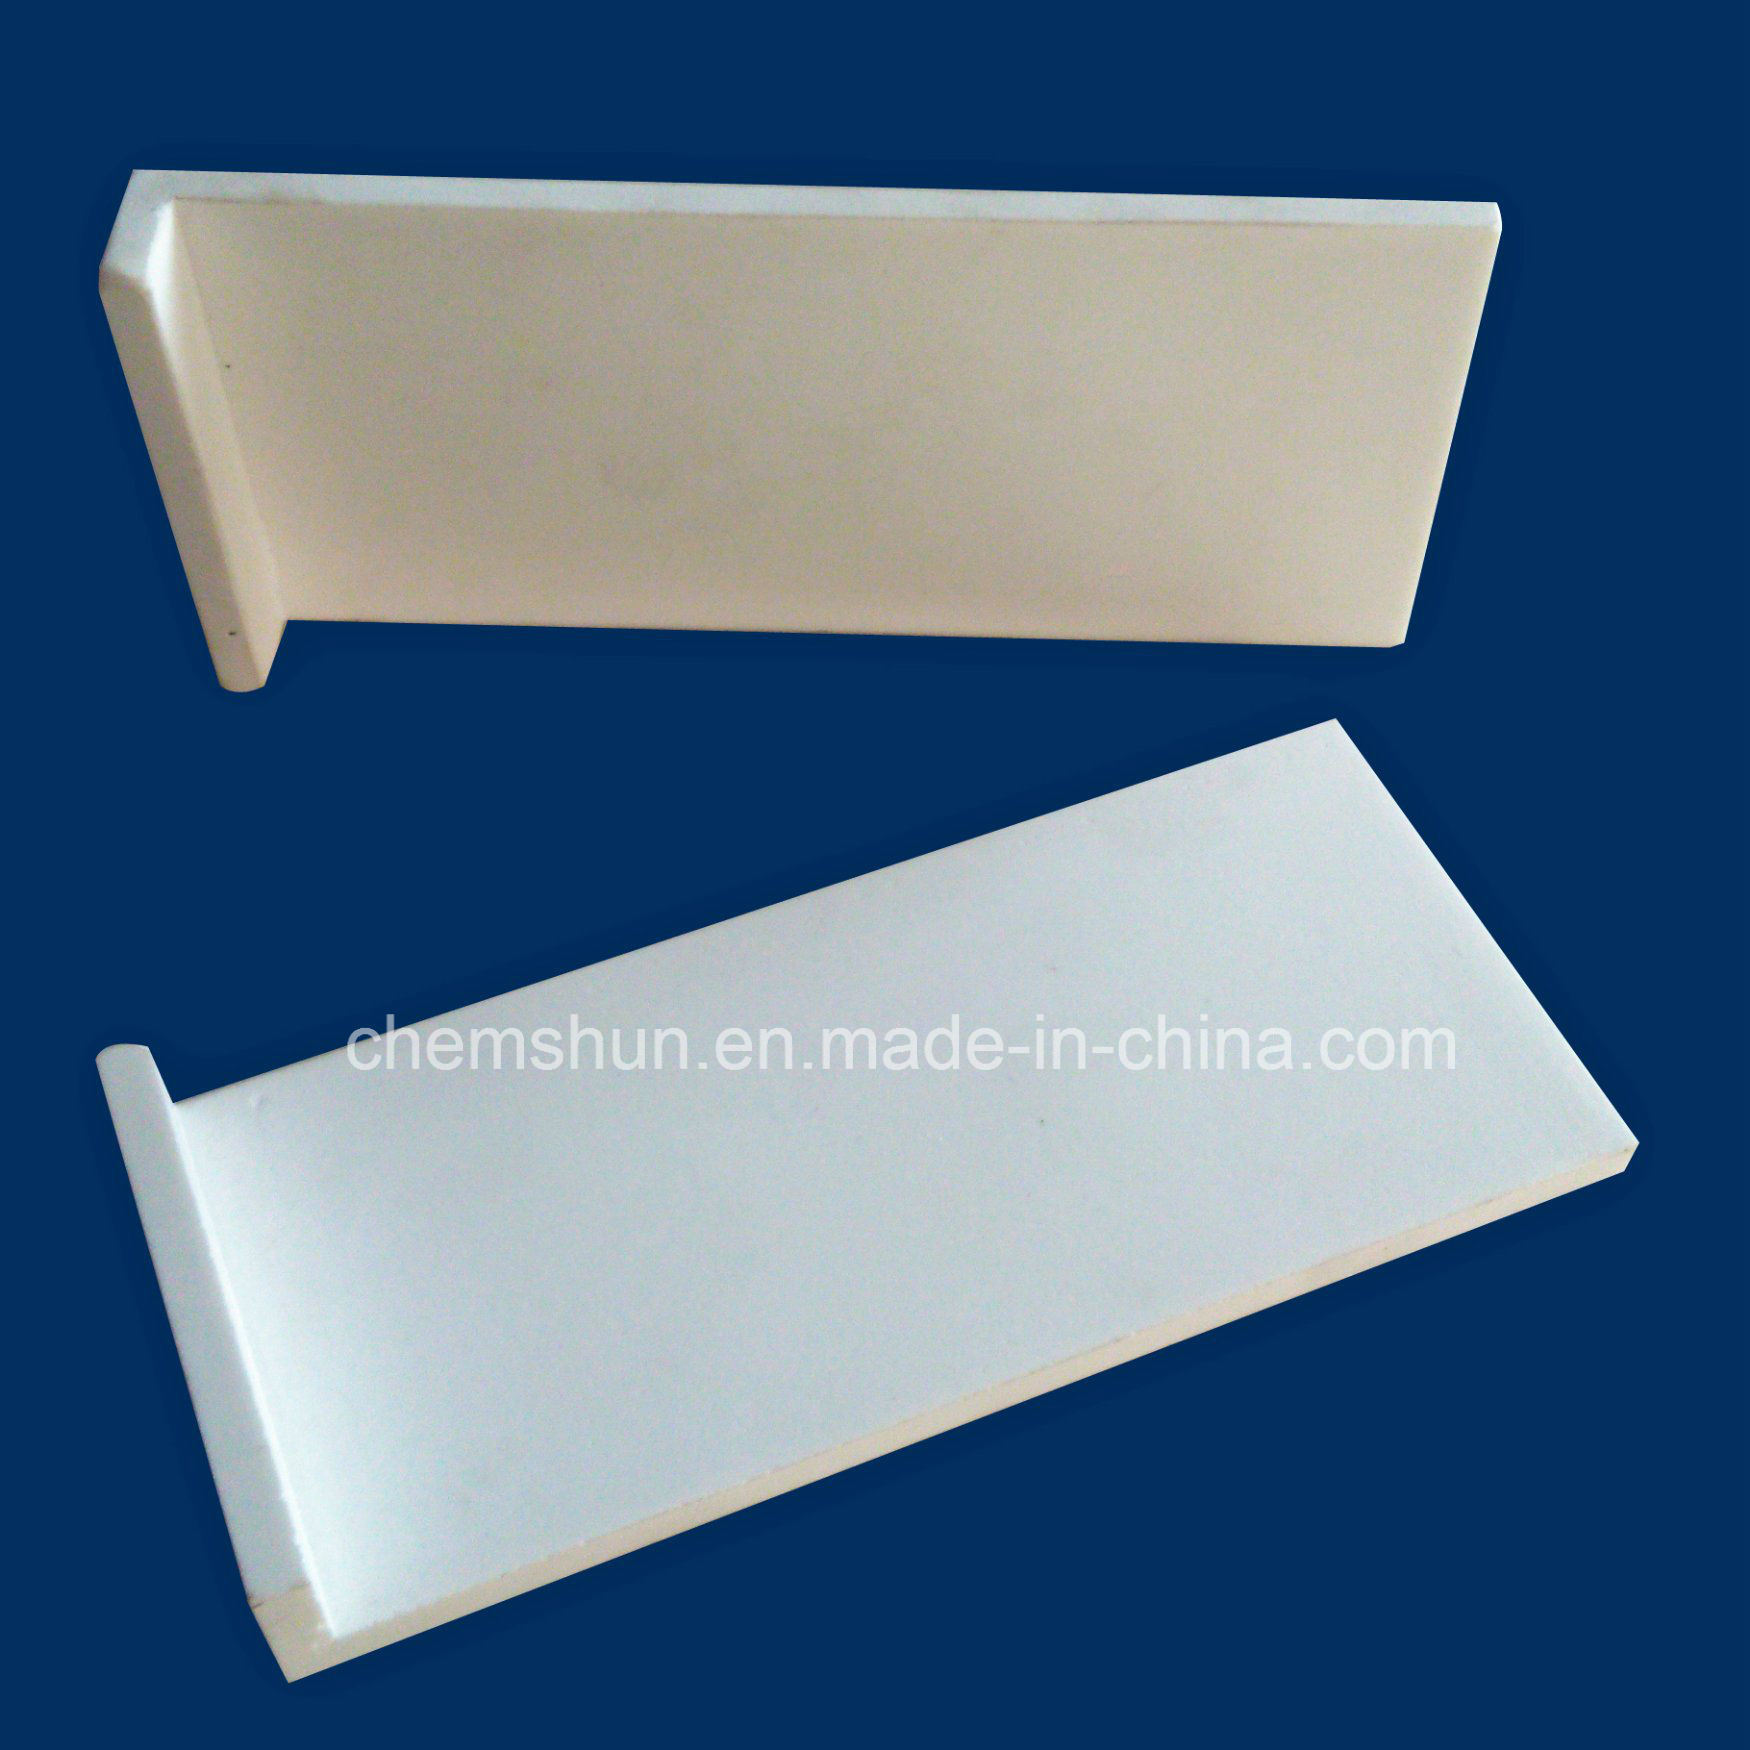 Alumina Wear Industrial Ceramic Blocks (L shape) pictures & photos